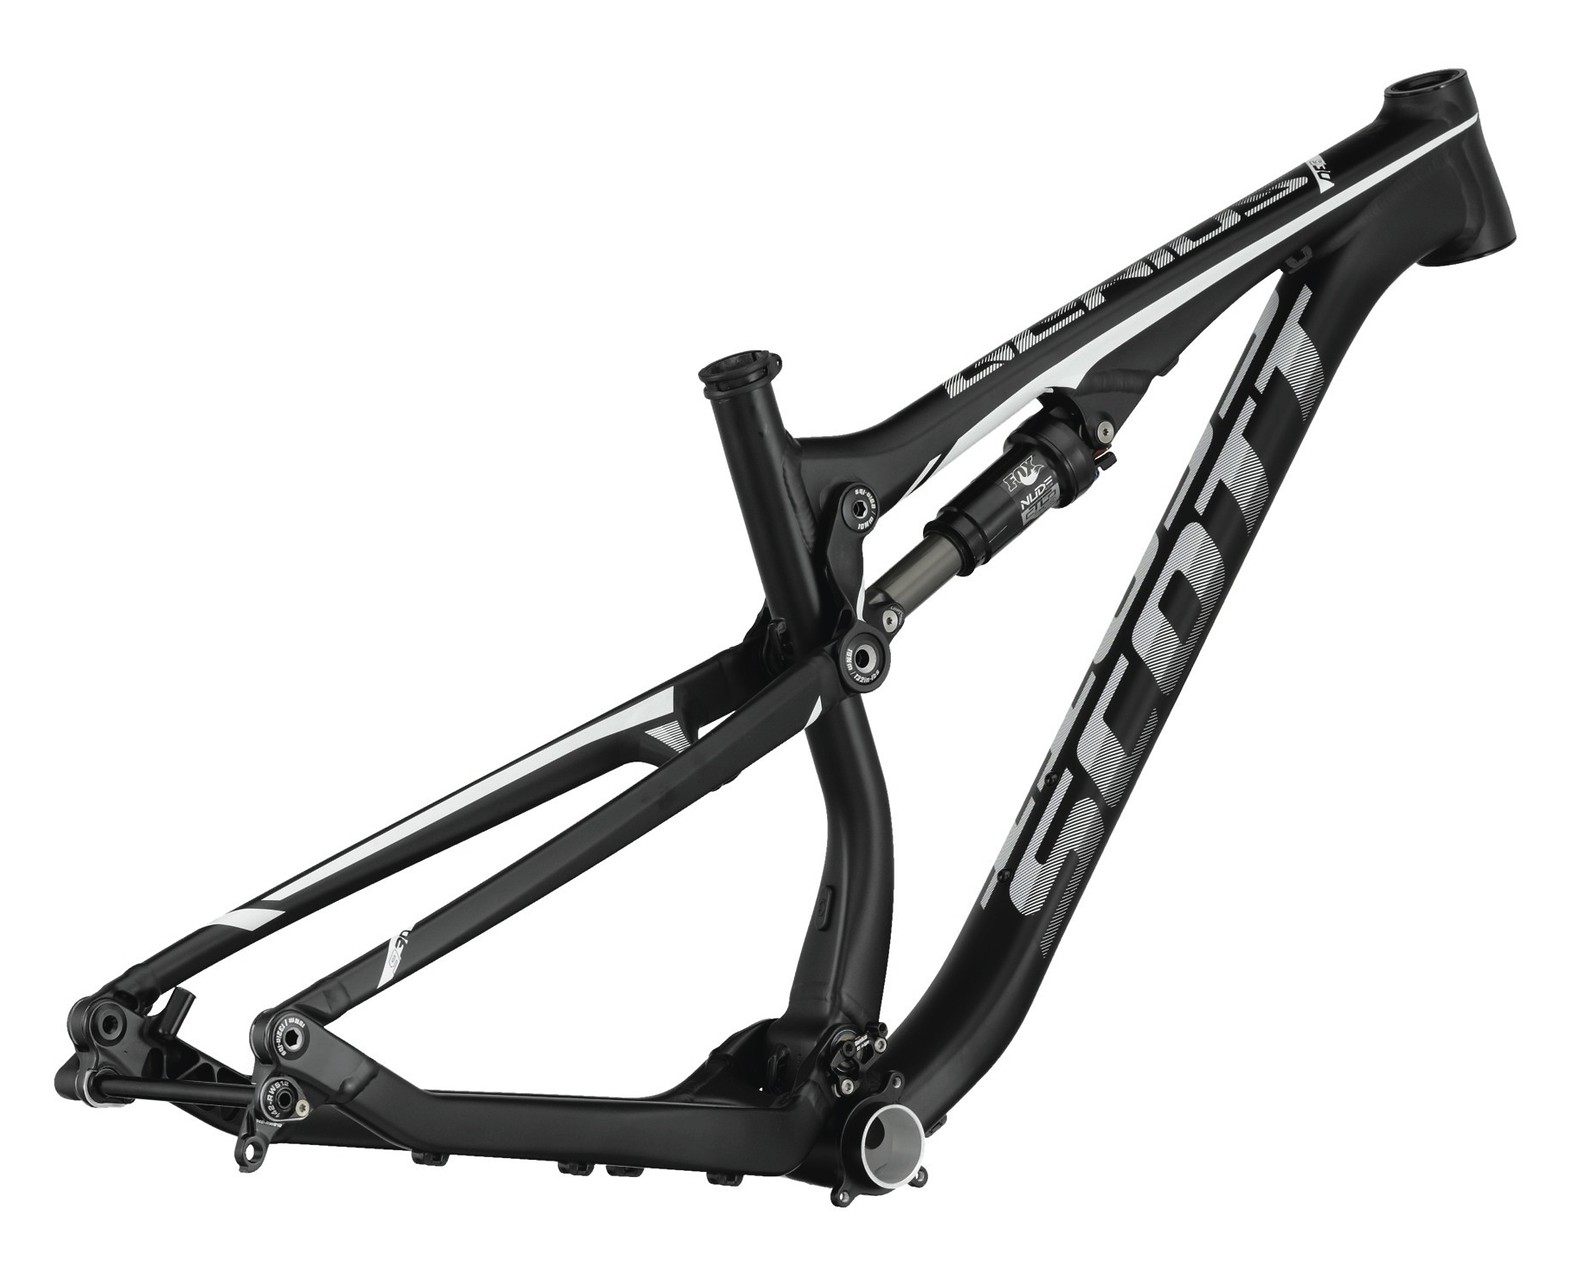 Scott Genius 930 Frame Reviews Comparisons Specs Mountain